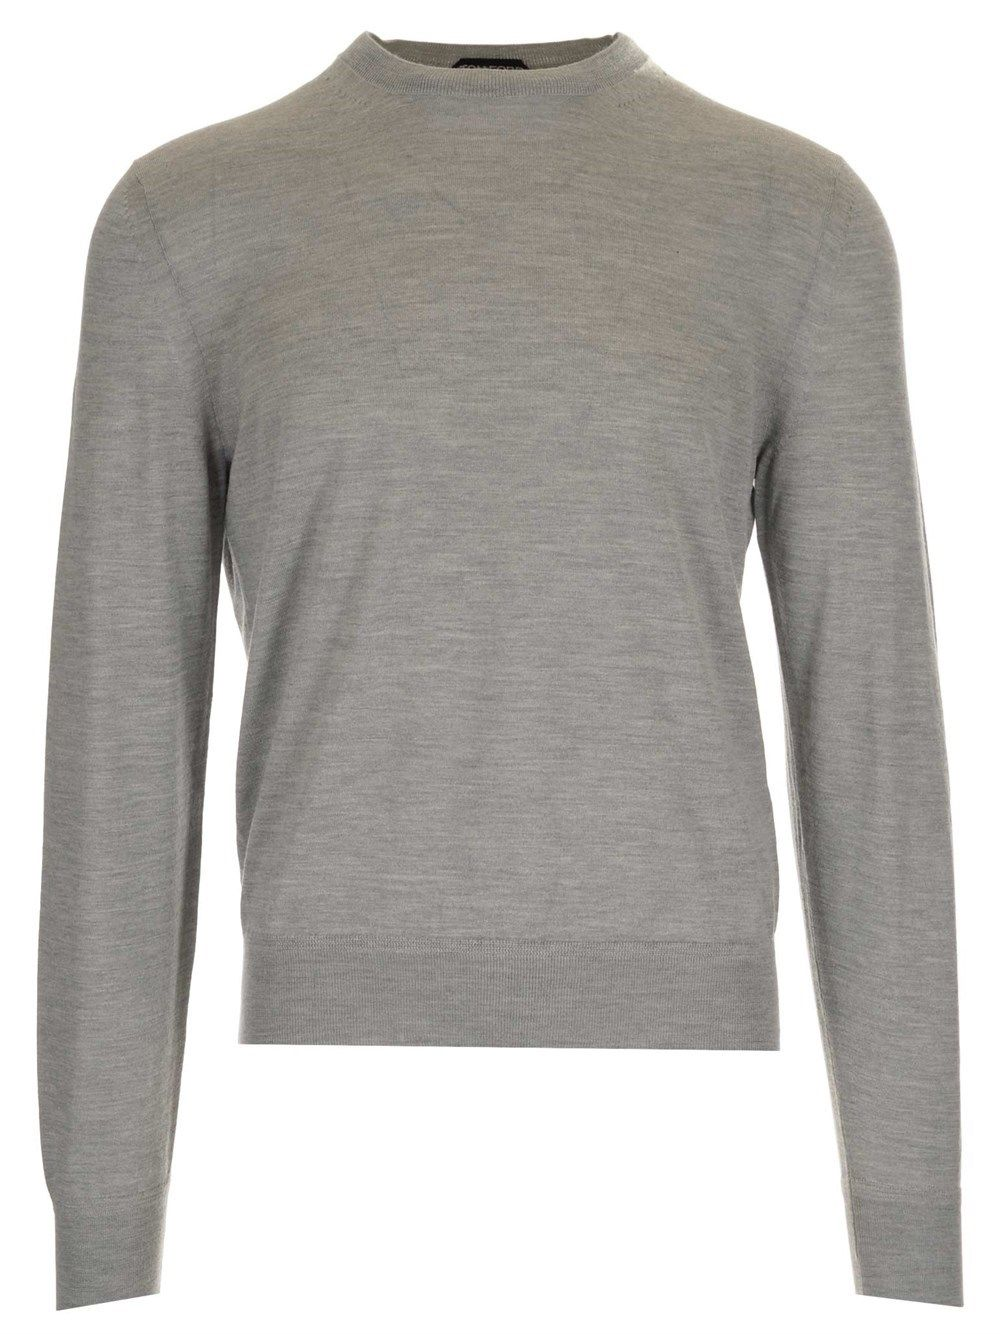 Tom Ford Silks TOM FORD MEN'S BWH99TFK110K04 GREY OTHER MATERIALS SWEATER